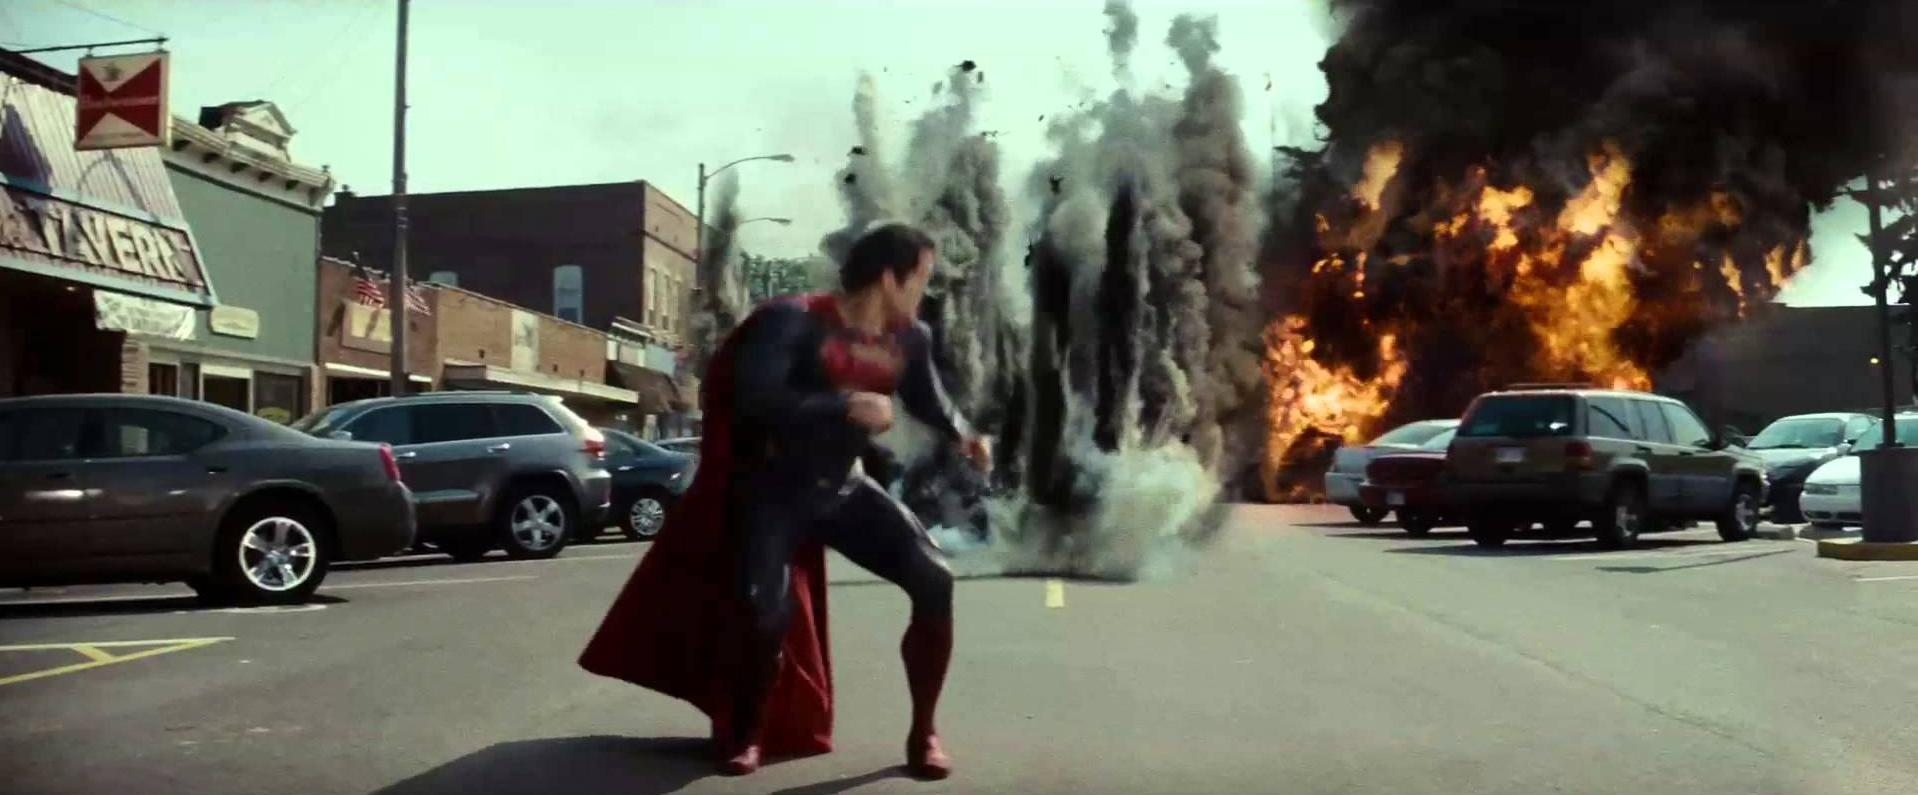 From the set of man of steel superherohype walking into the middle of downtown plano illinois where shooting was taking place it didnt take long for us to get our answer biocorpaavc